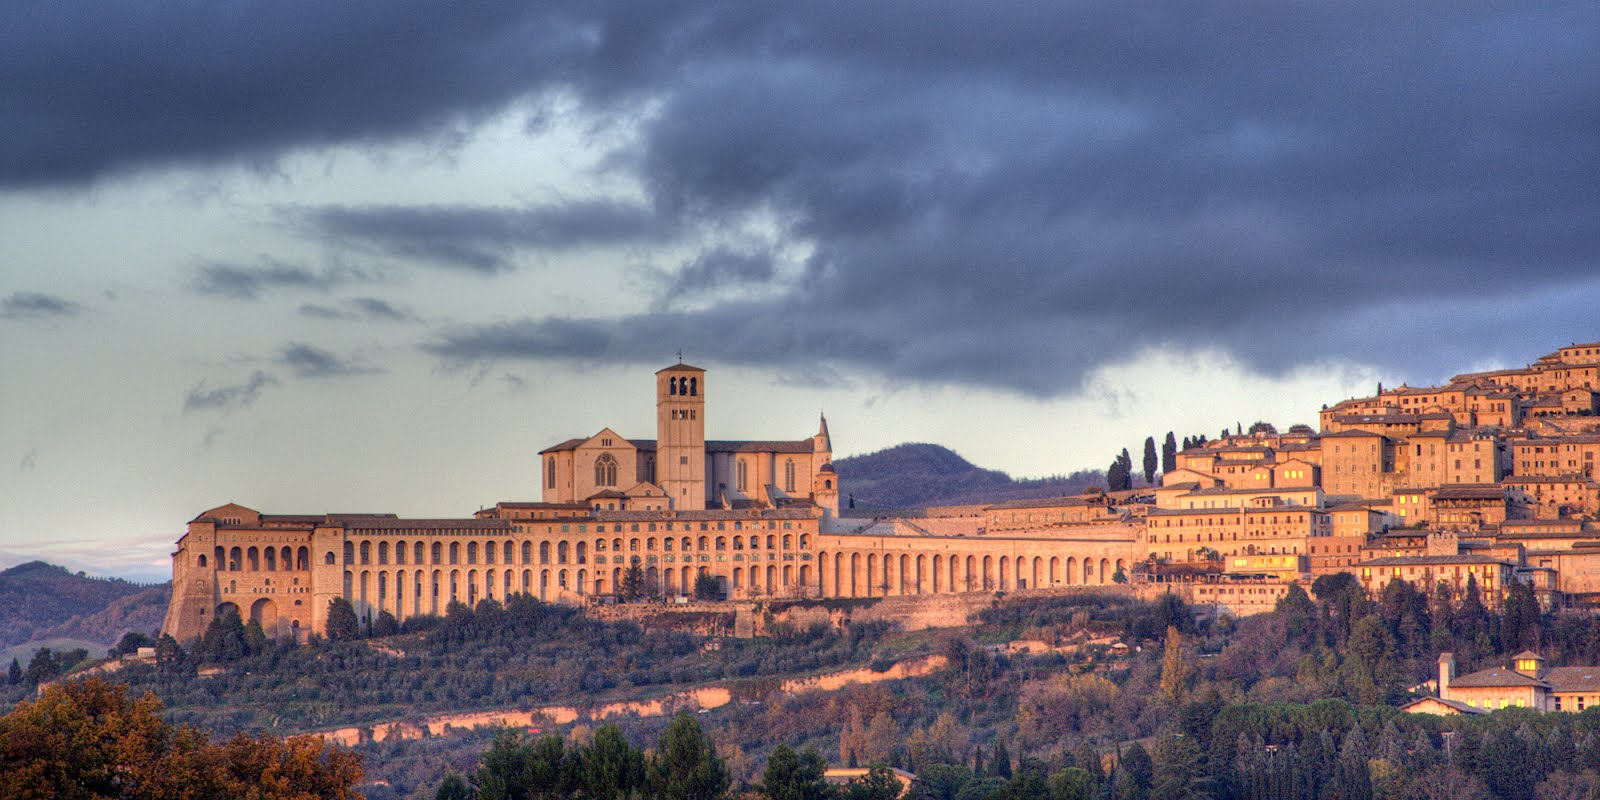 False peace of Assisi